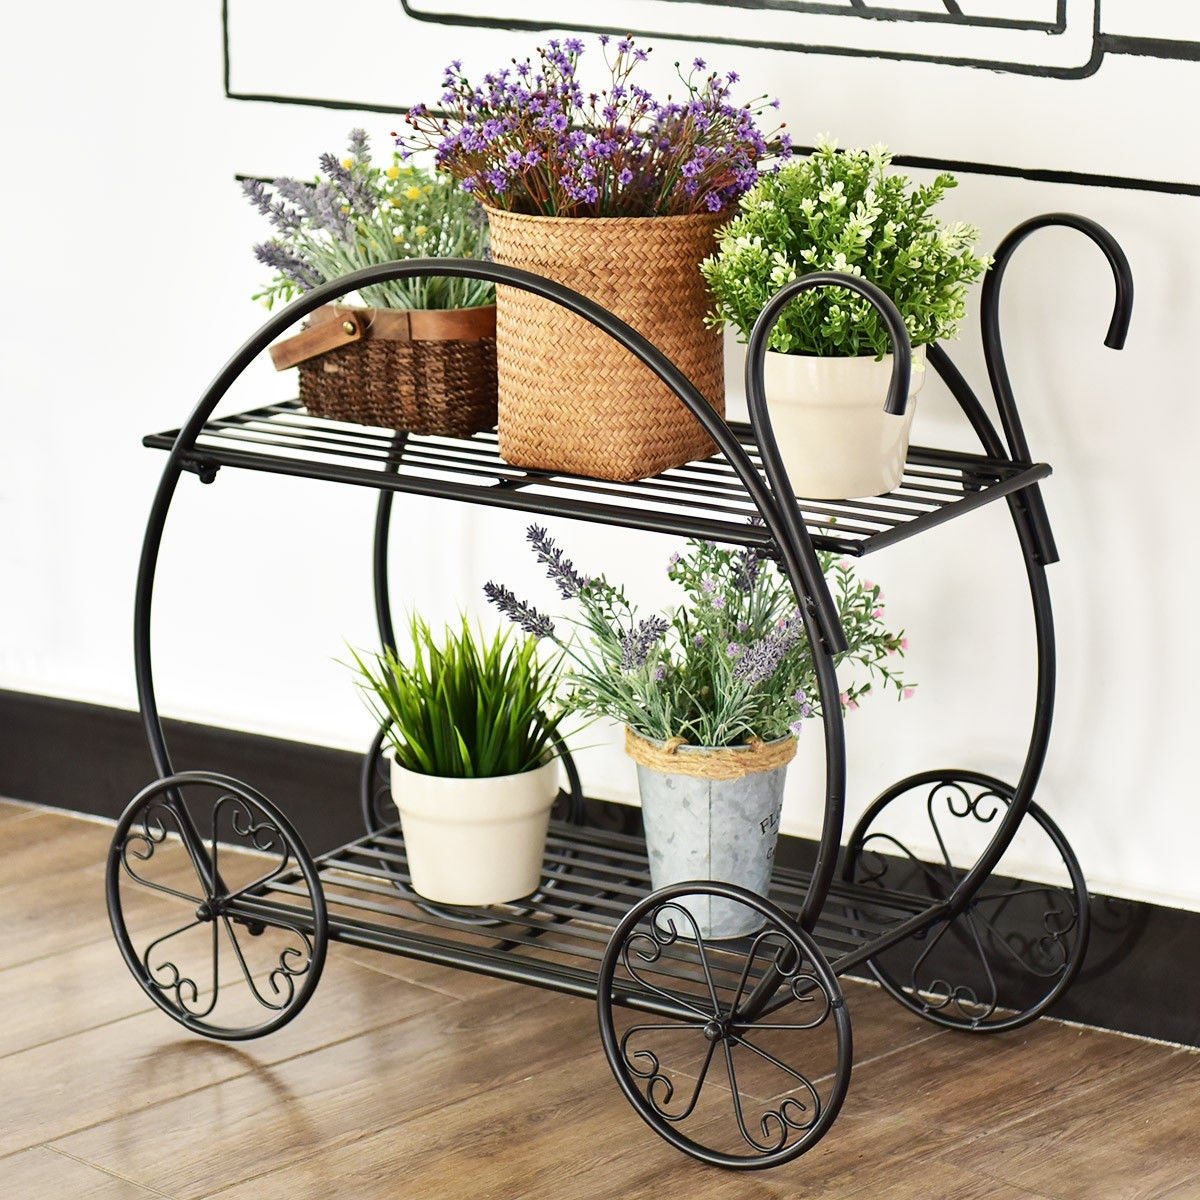 Shop costway heavy duty metal flower cart pot rack plant display stand holder decor black free shipping today overstock com 18770724